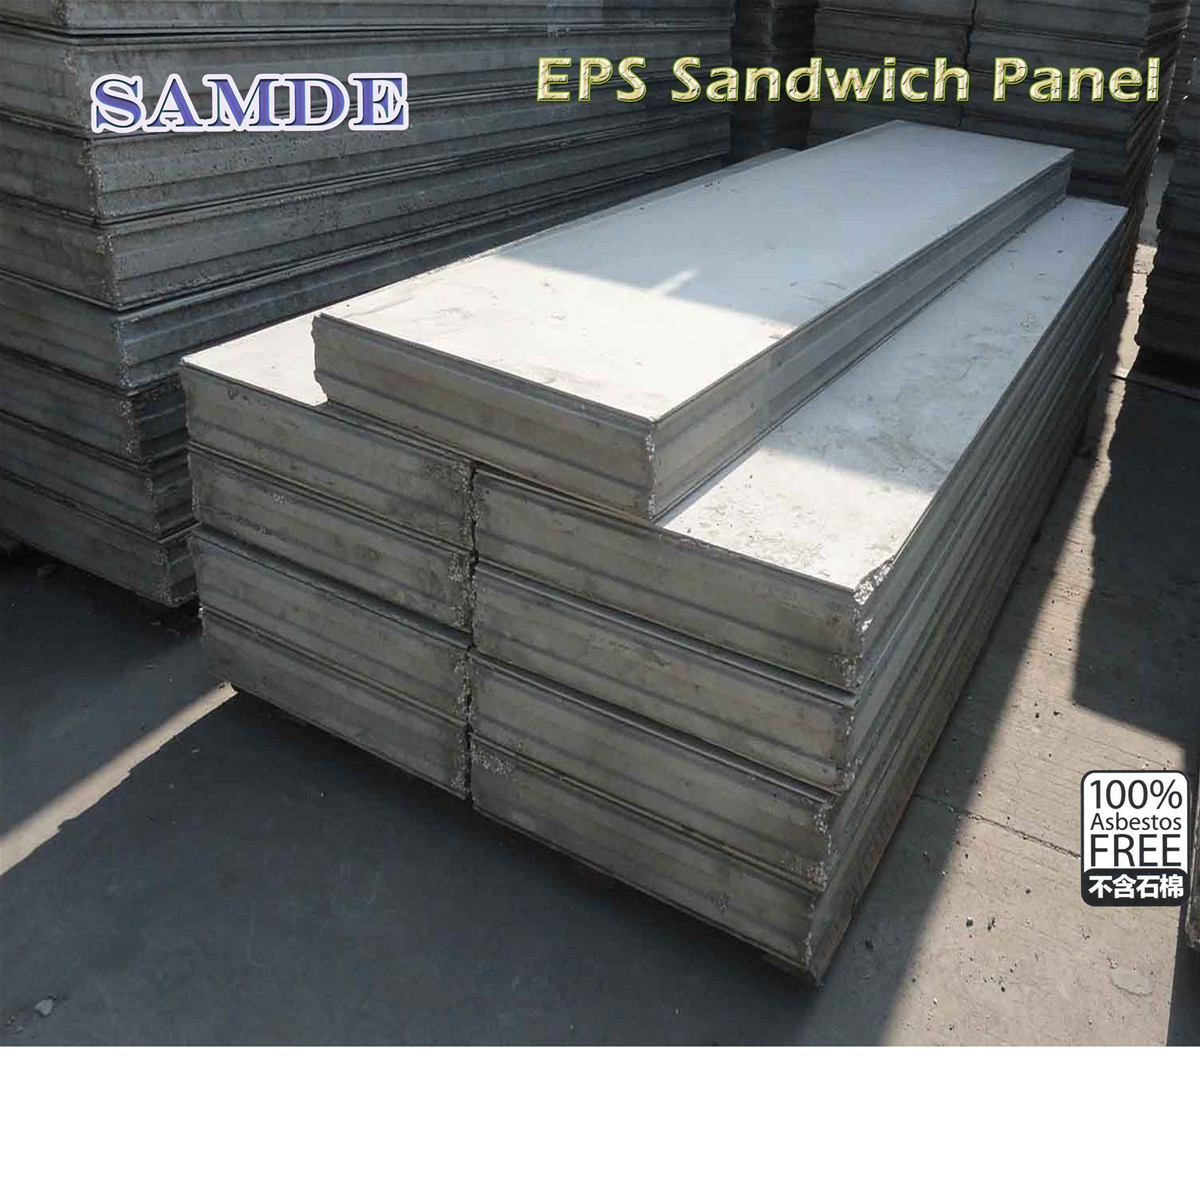 First Class Expanded Polystyrene Concrete Eps Cement